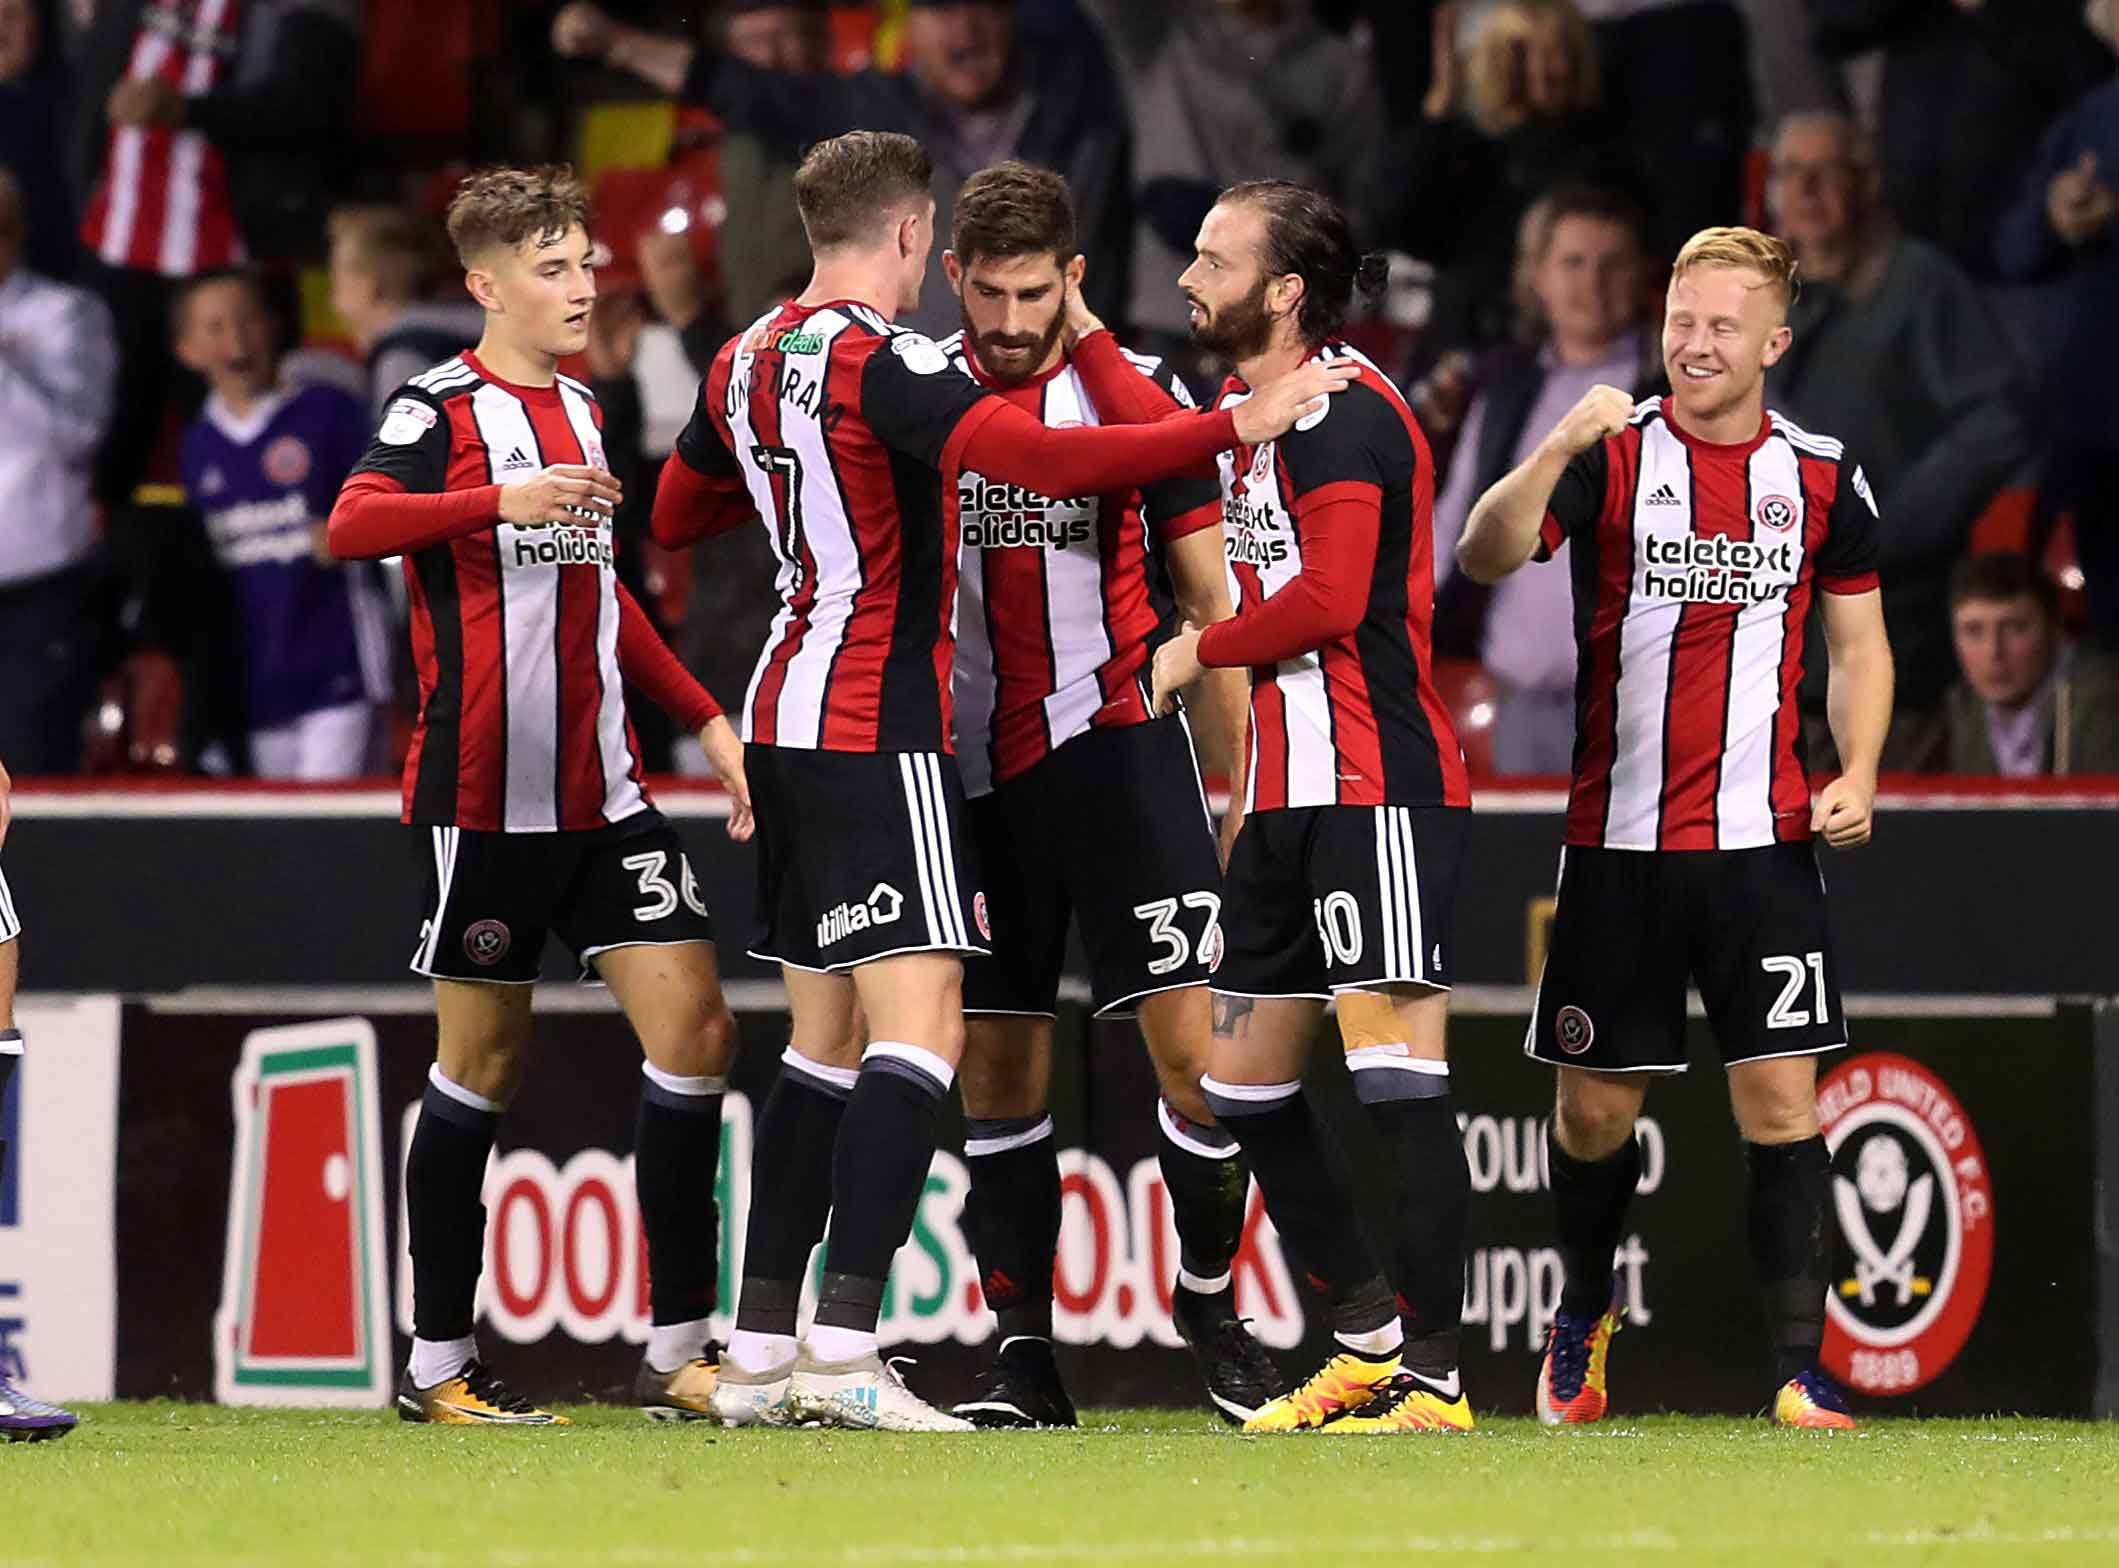 Will Blades' Season Still Be Classed As a Success Even If They Miss Out On Top 6?